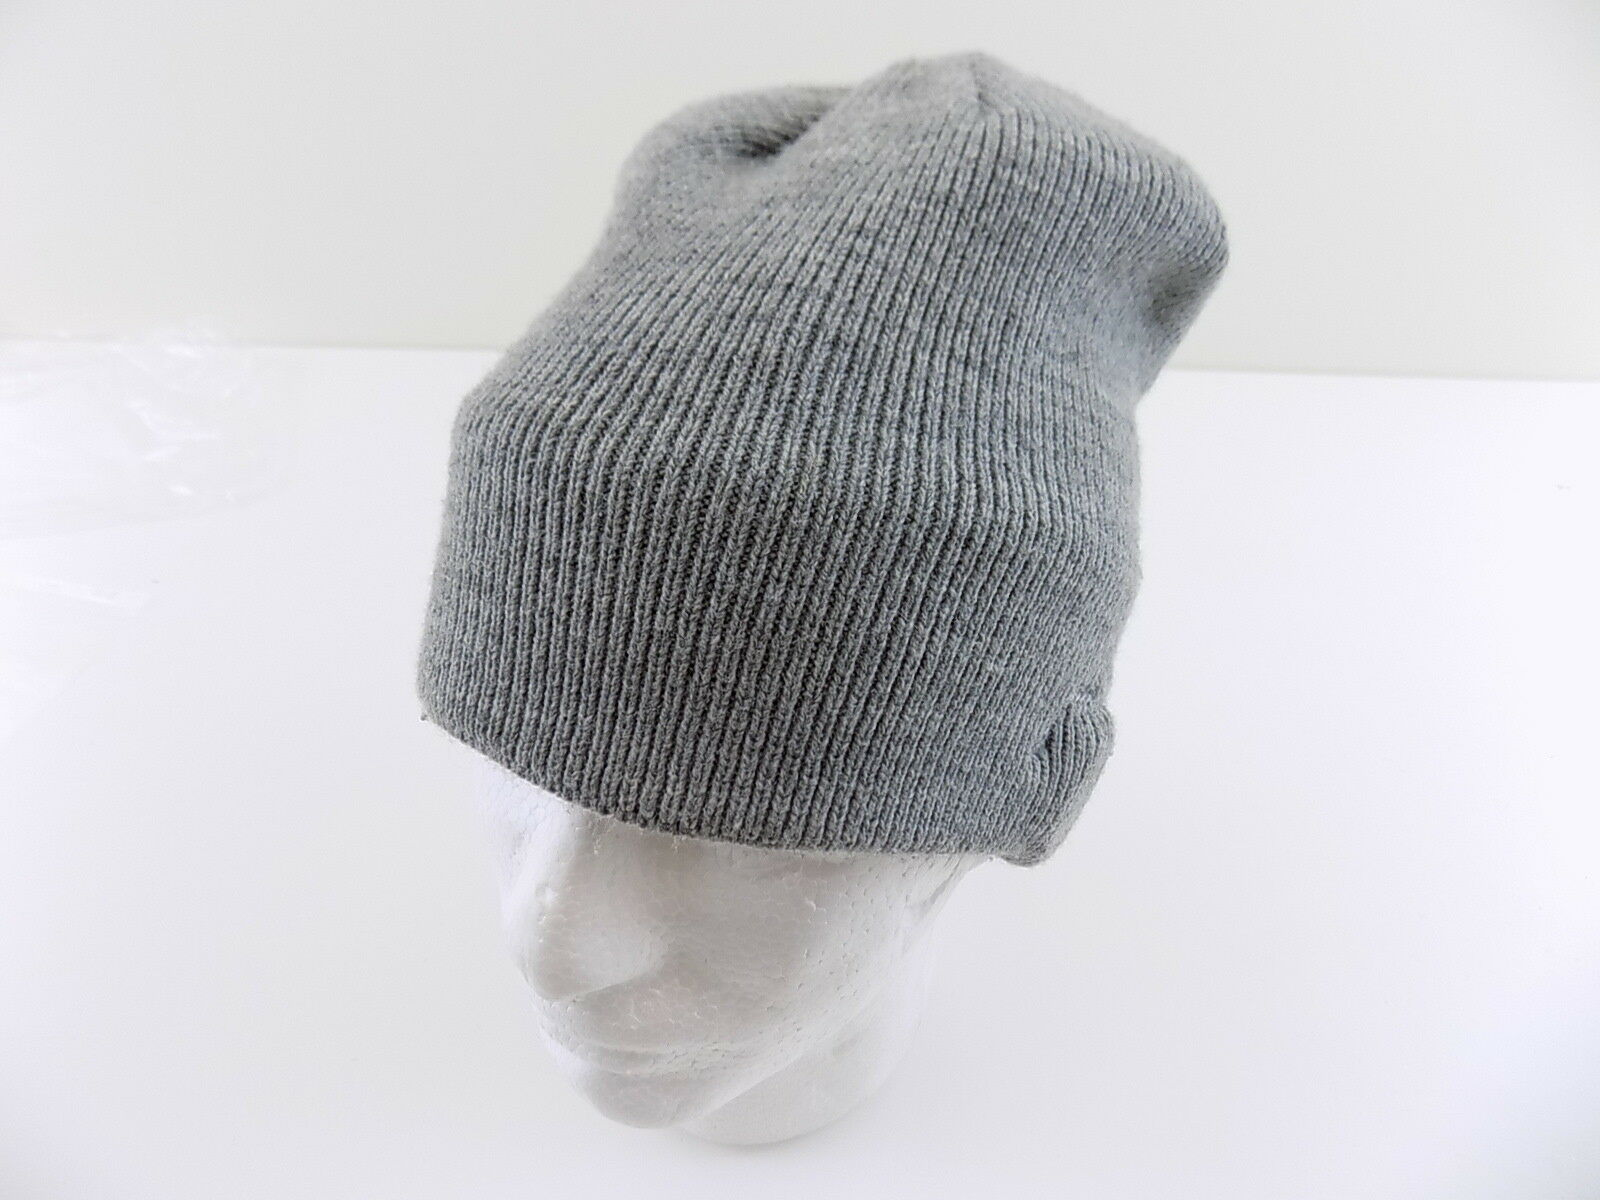 6d769e20 UPC 029407506380 product image for Tenergy $ Men Beanie Bluetooth Hat  Acrylic Size One Size Gray UPC 029407506380 product image for Tommy  Hilfiger Chunky ...